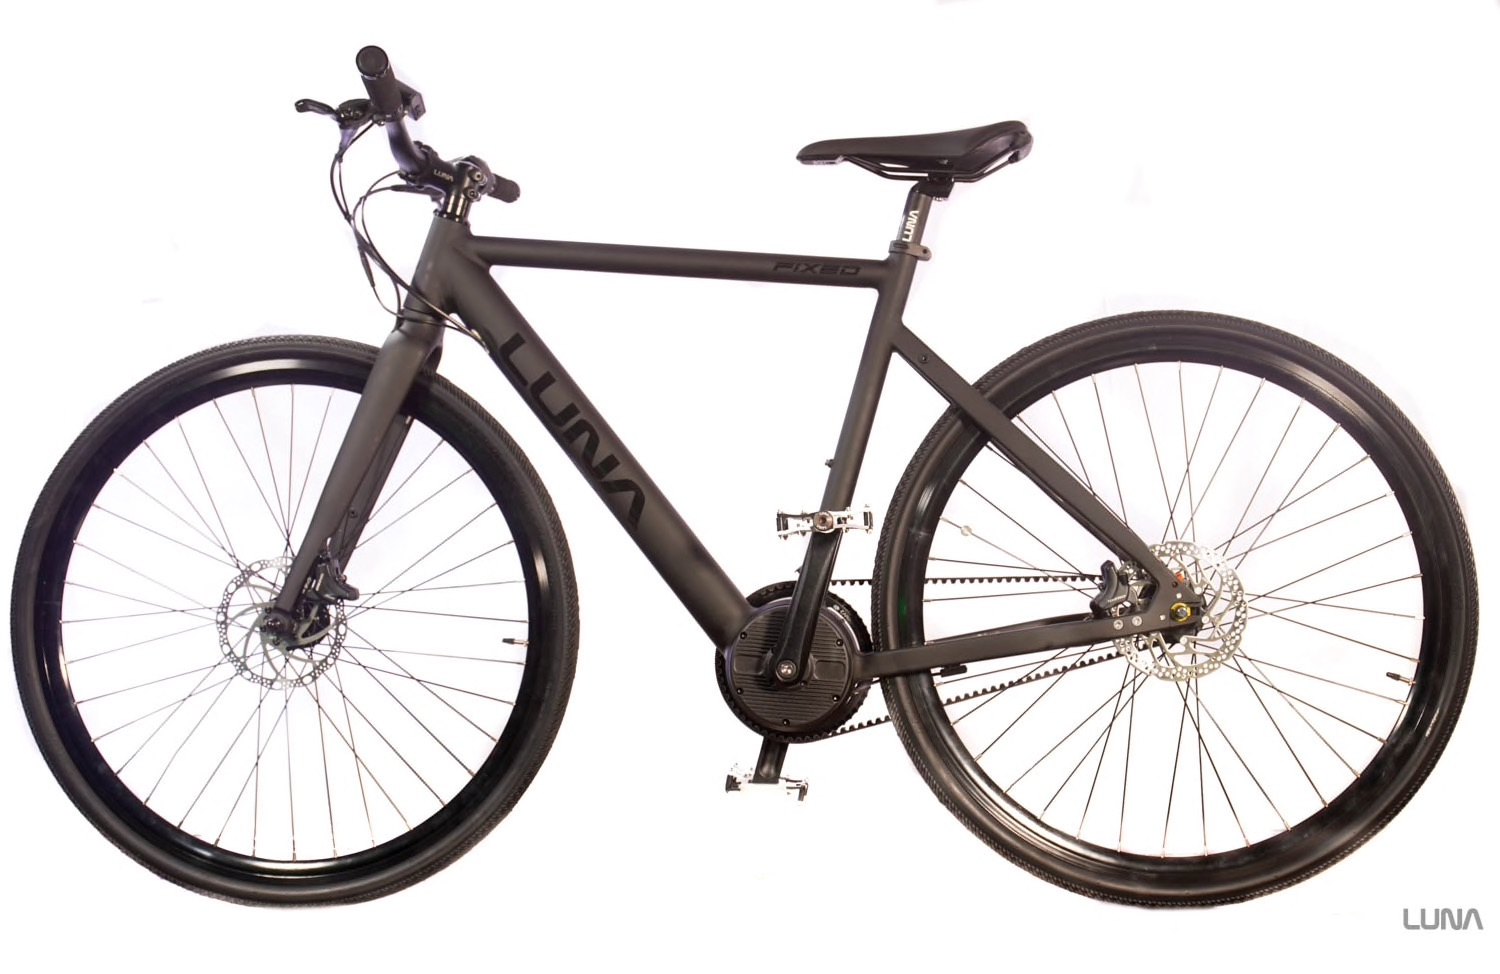 Luna's new fixie offers hipsters a shockingly affordable stealth electric bike